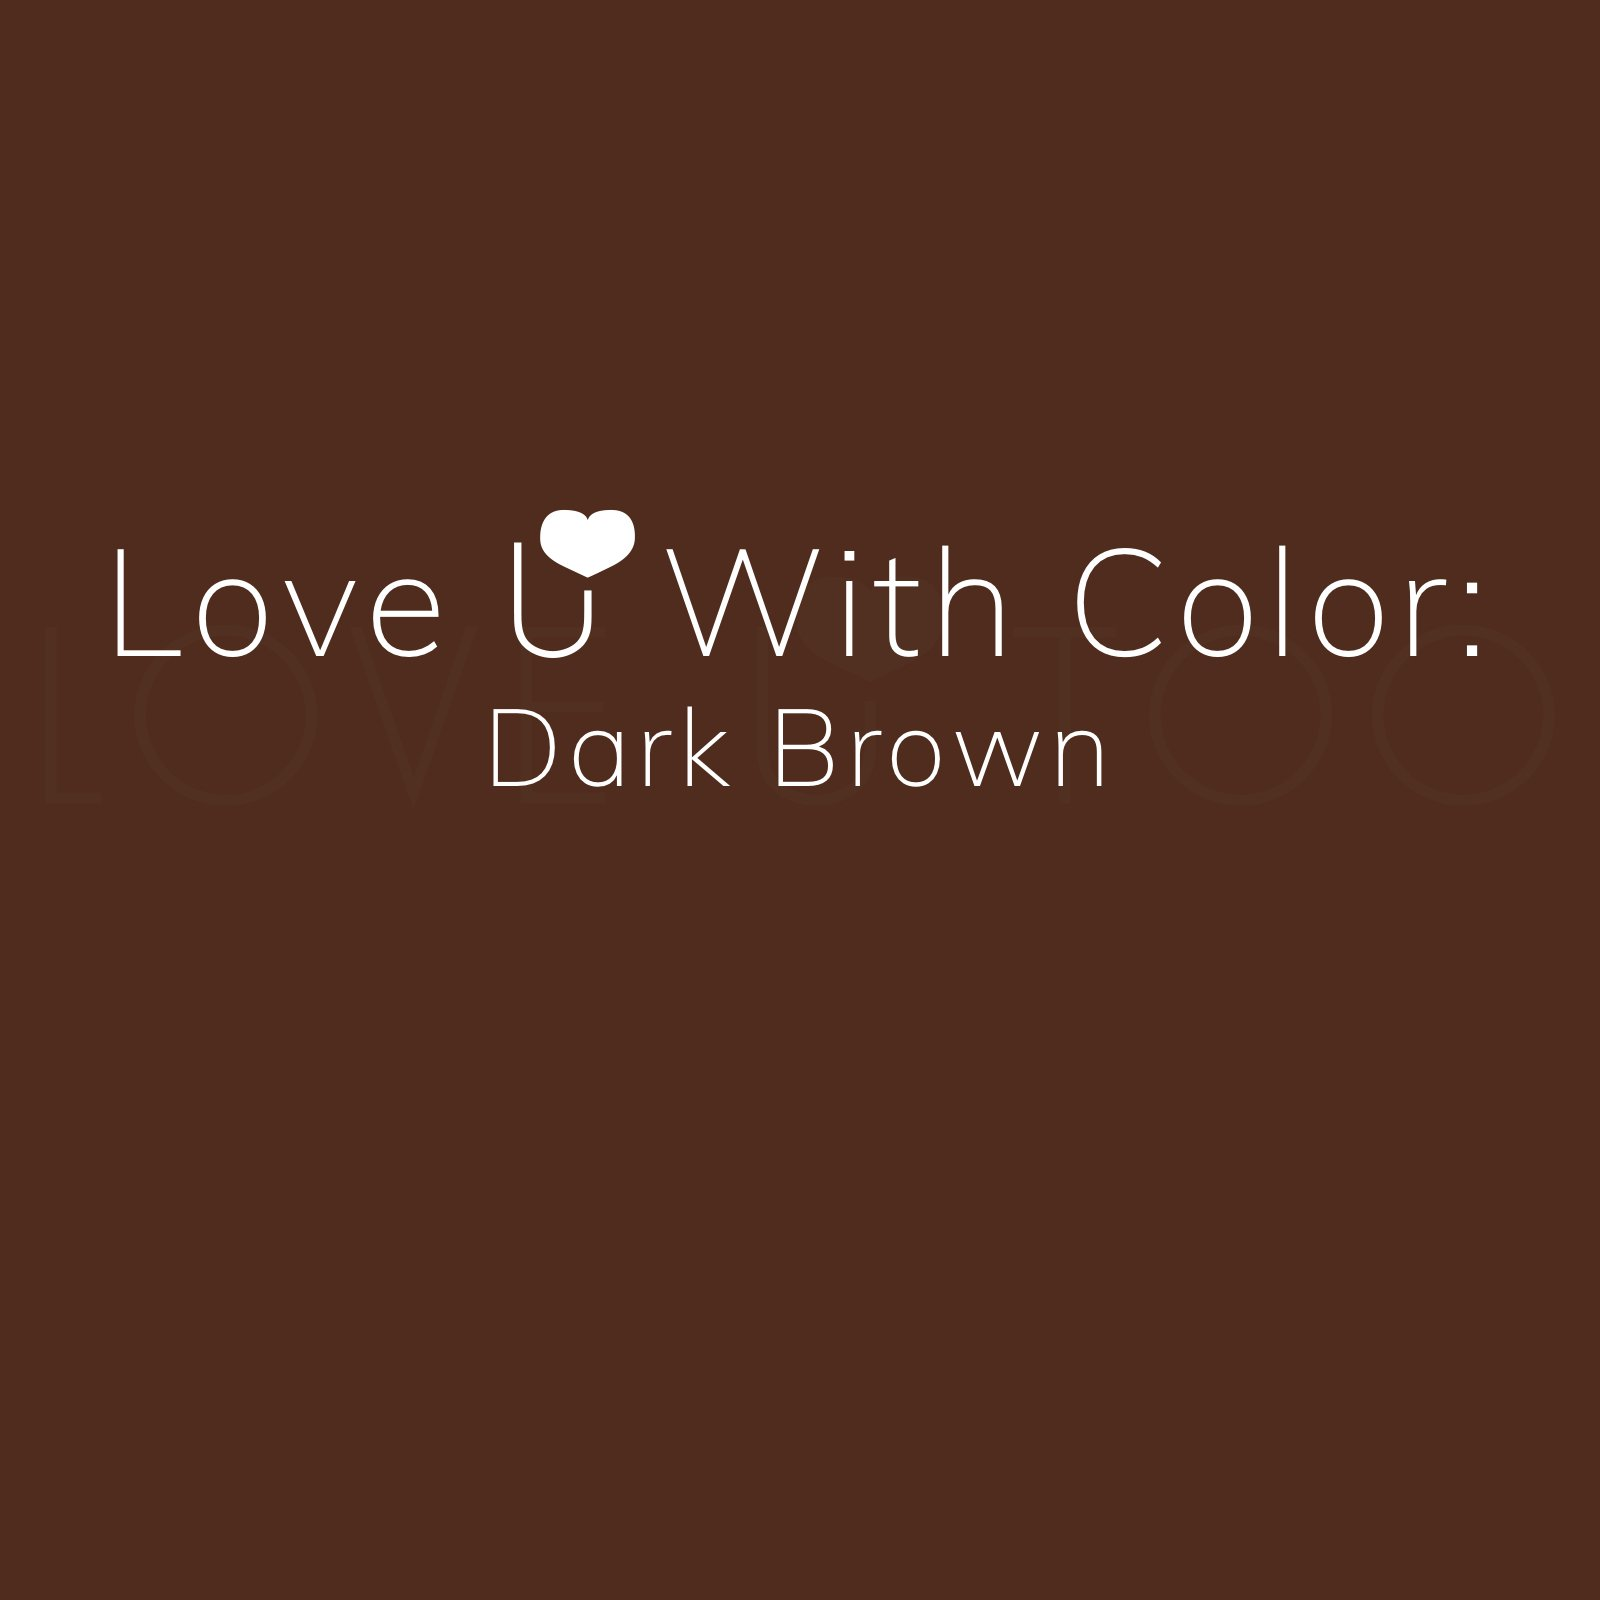 Love U With Color: Dark Brown